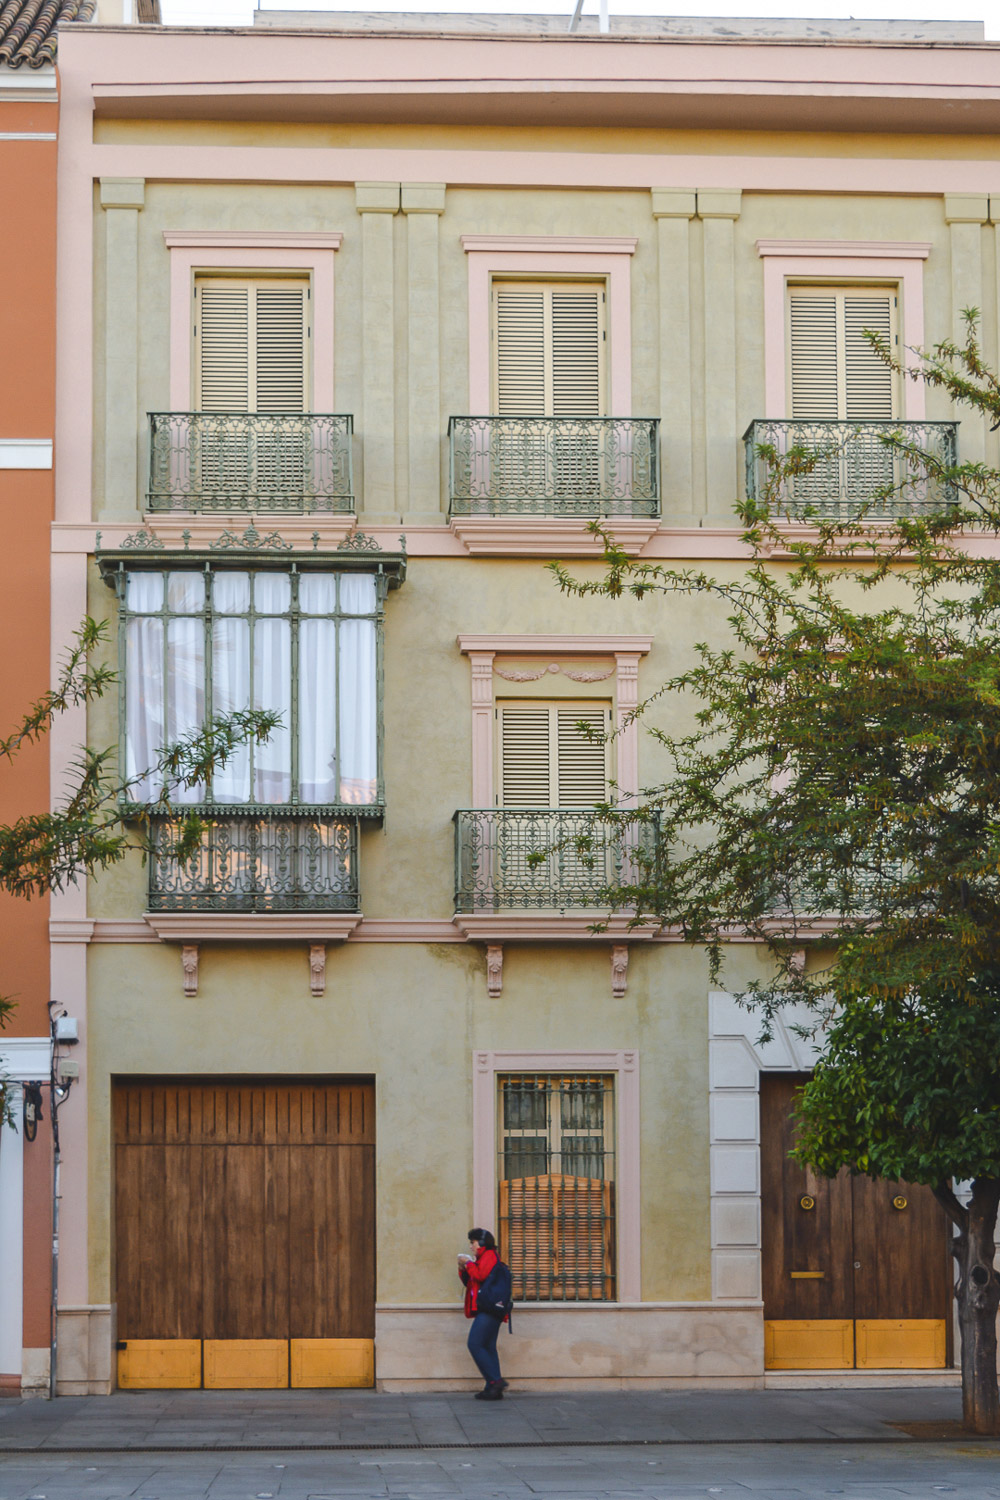 The streets of Seville are colorful and charming